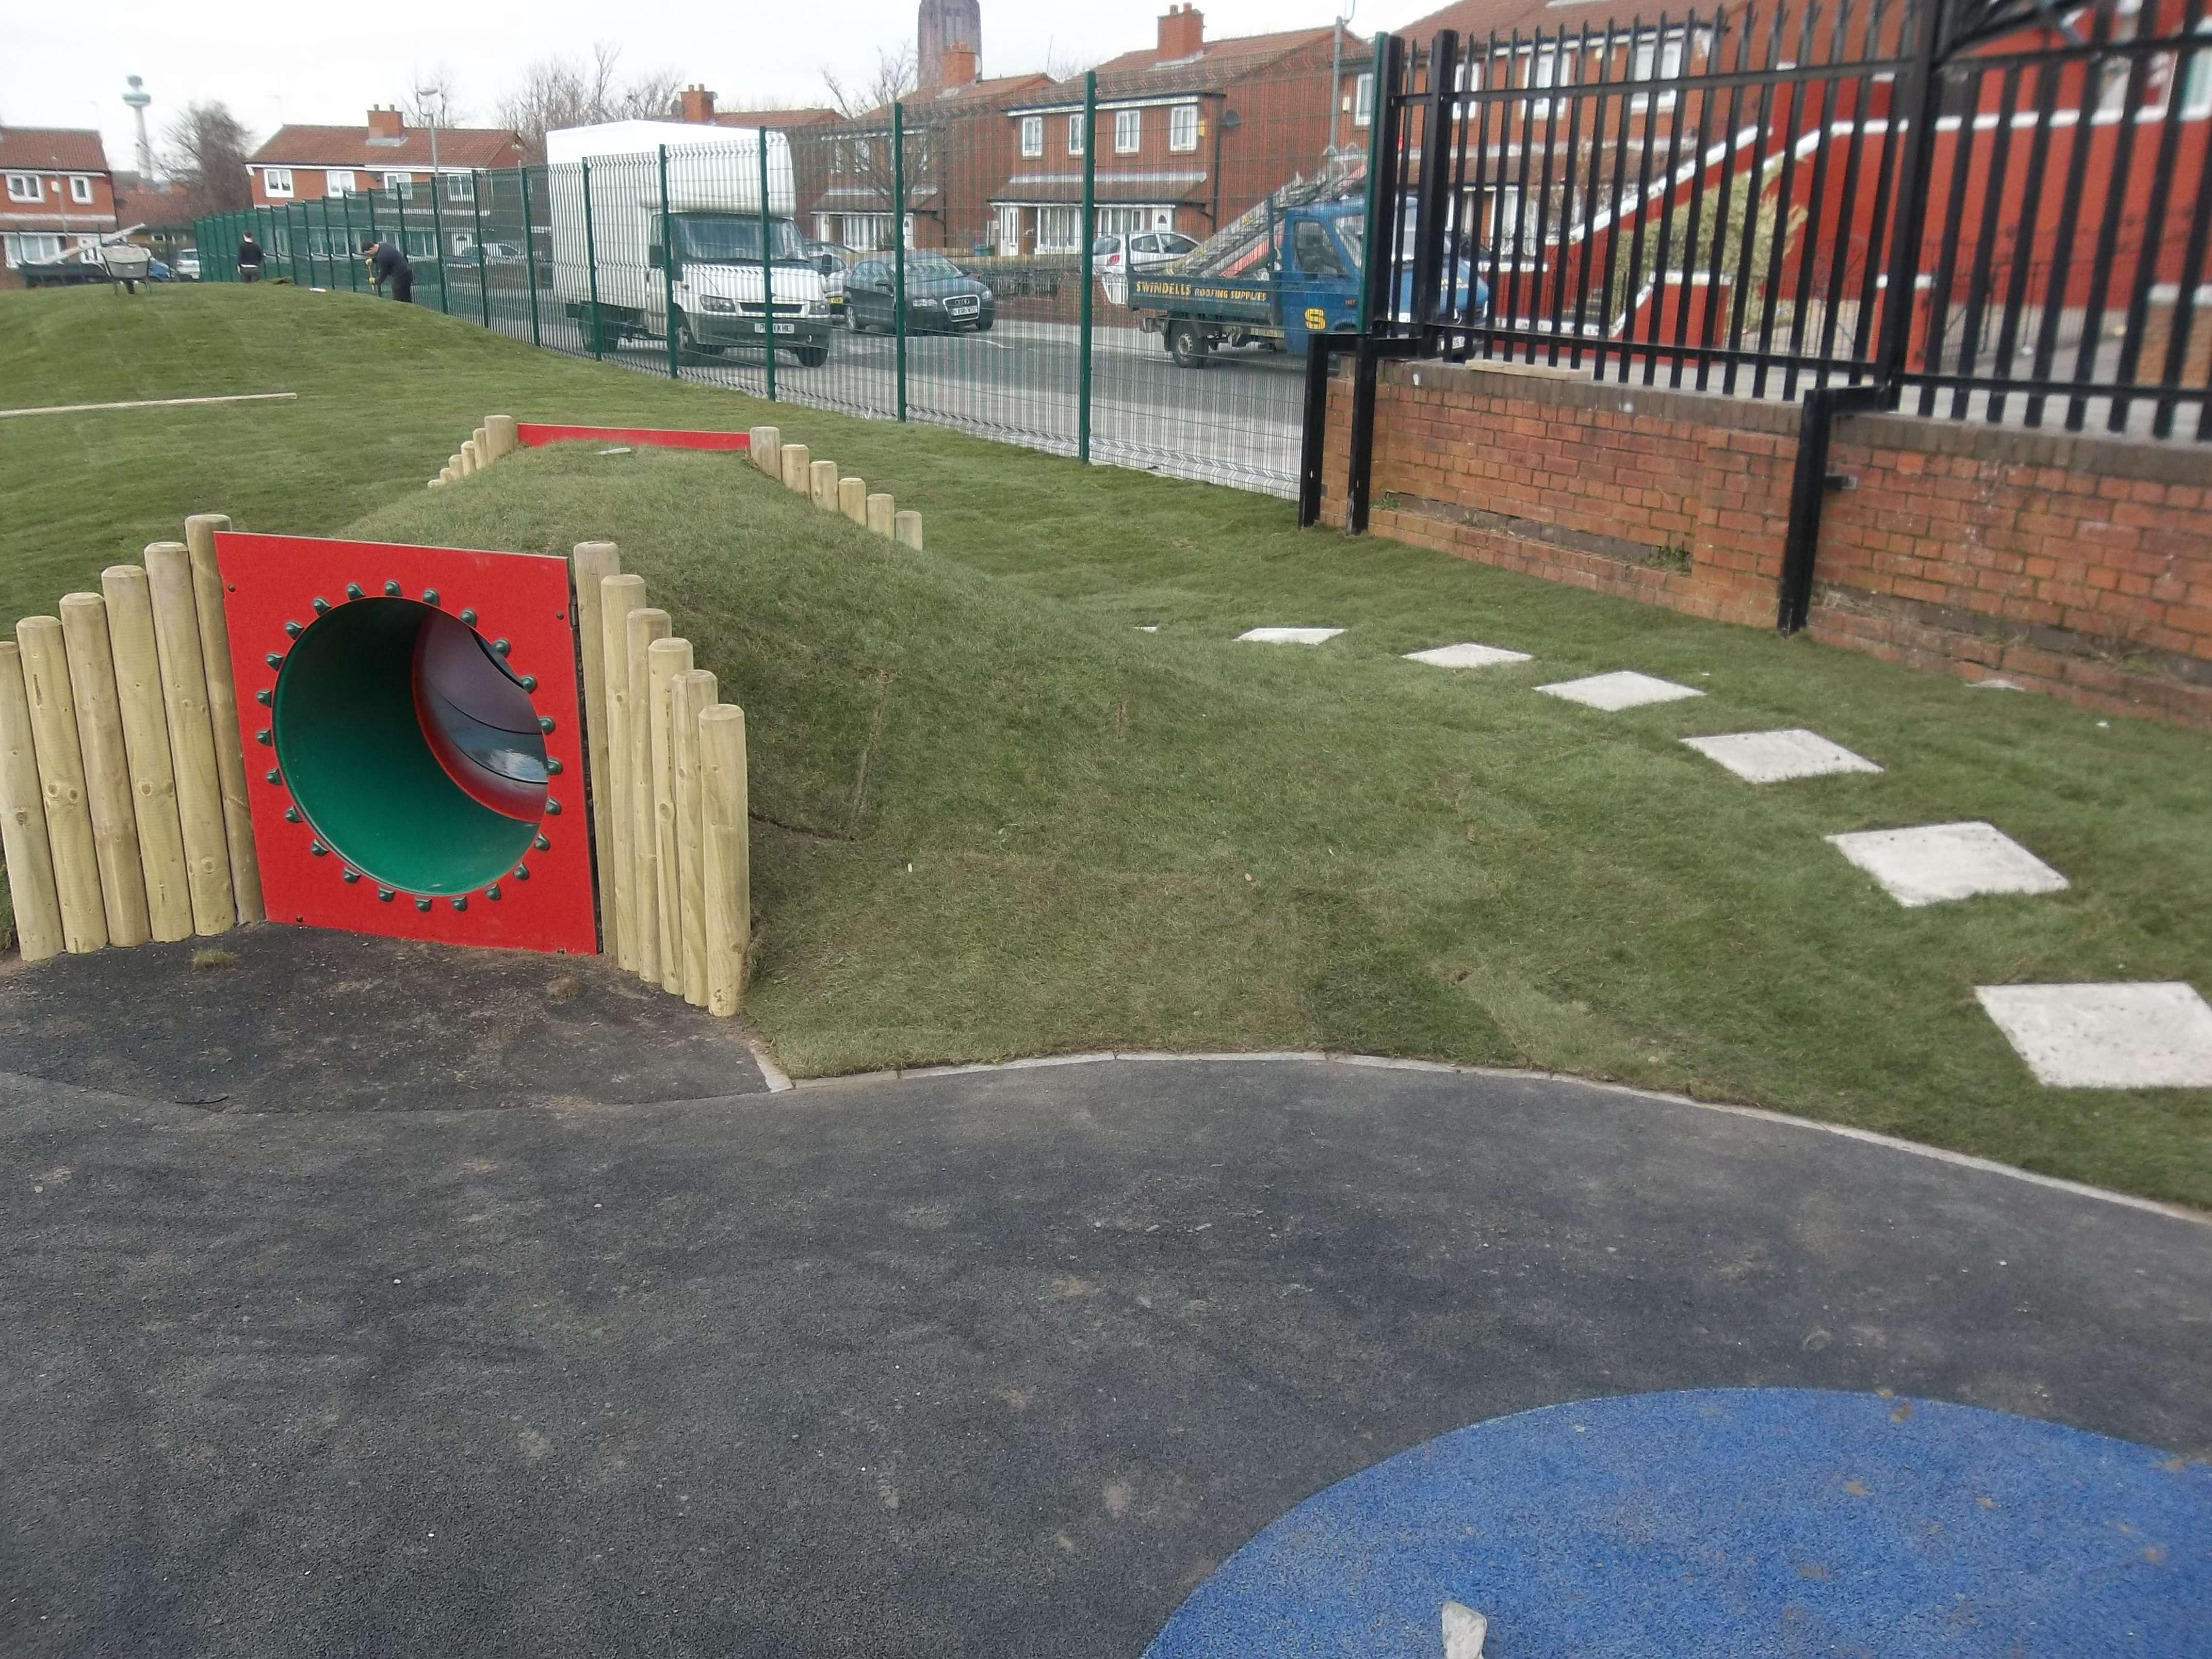 A newly built playground for the community